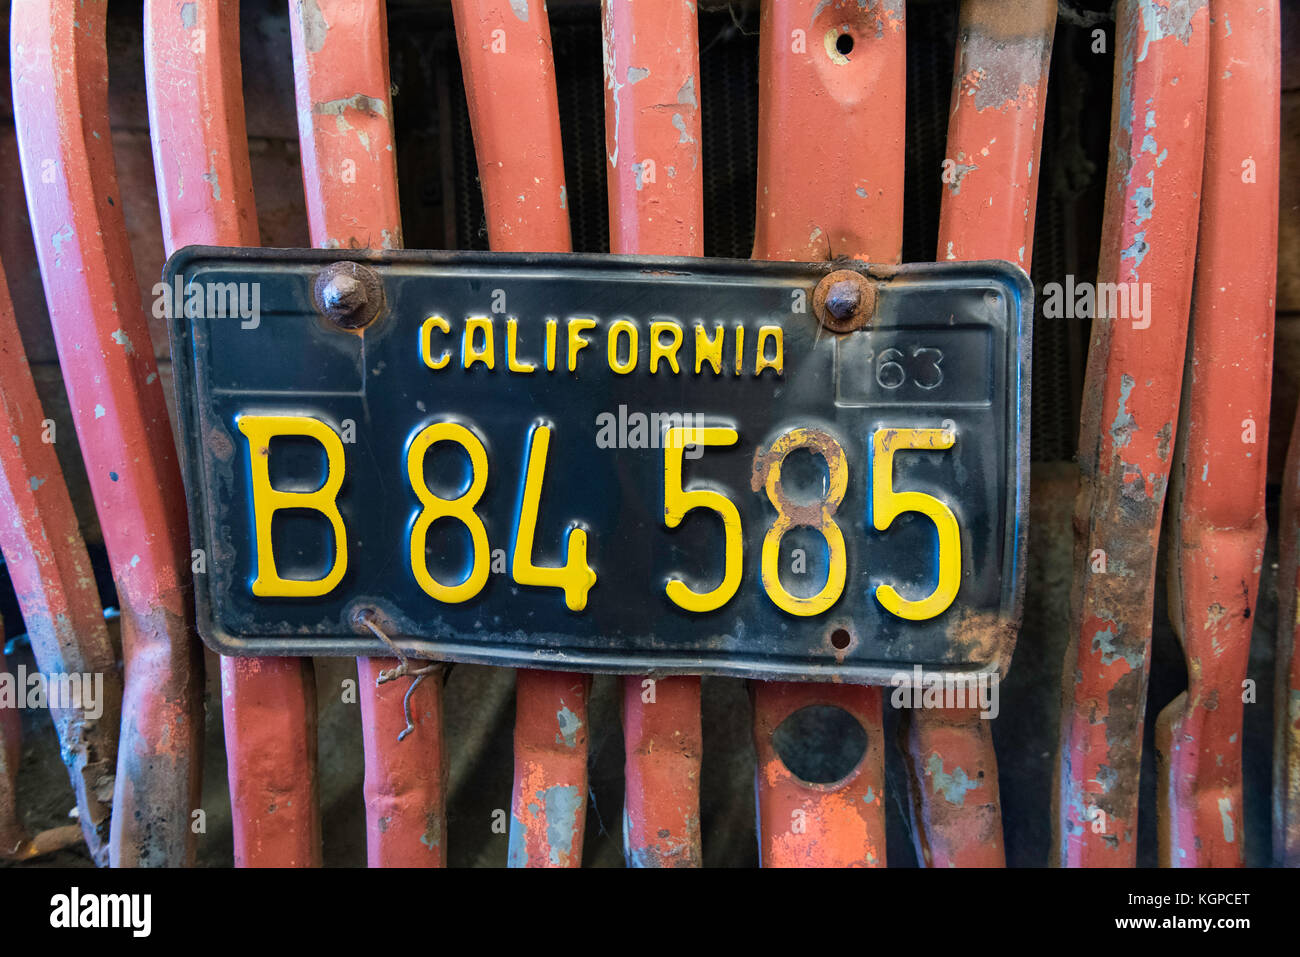 Old California Number Plate Stock Photos & Old California Number ...